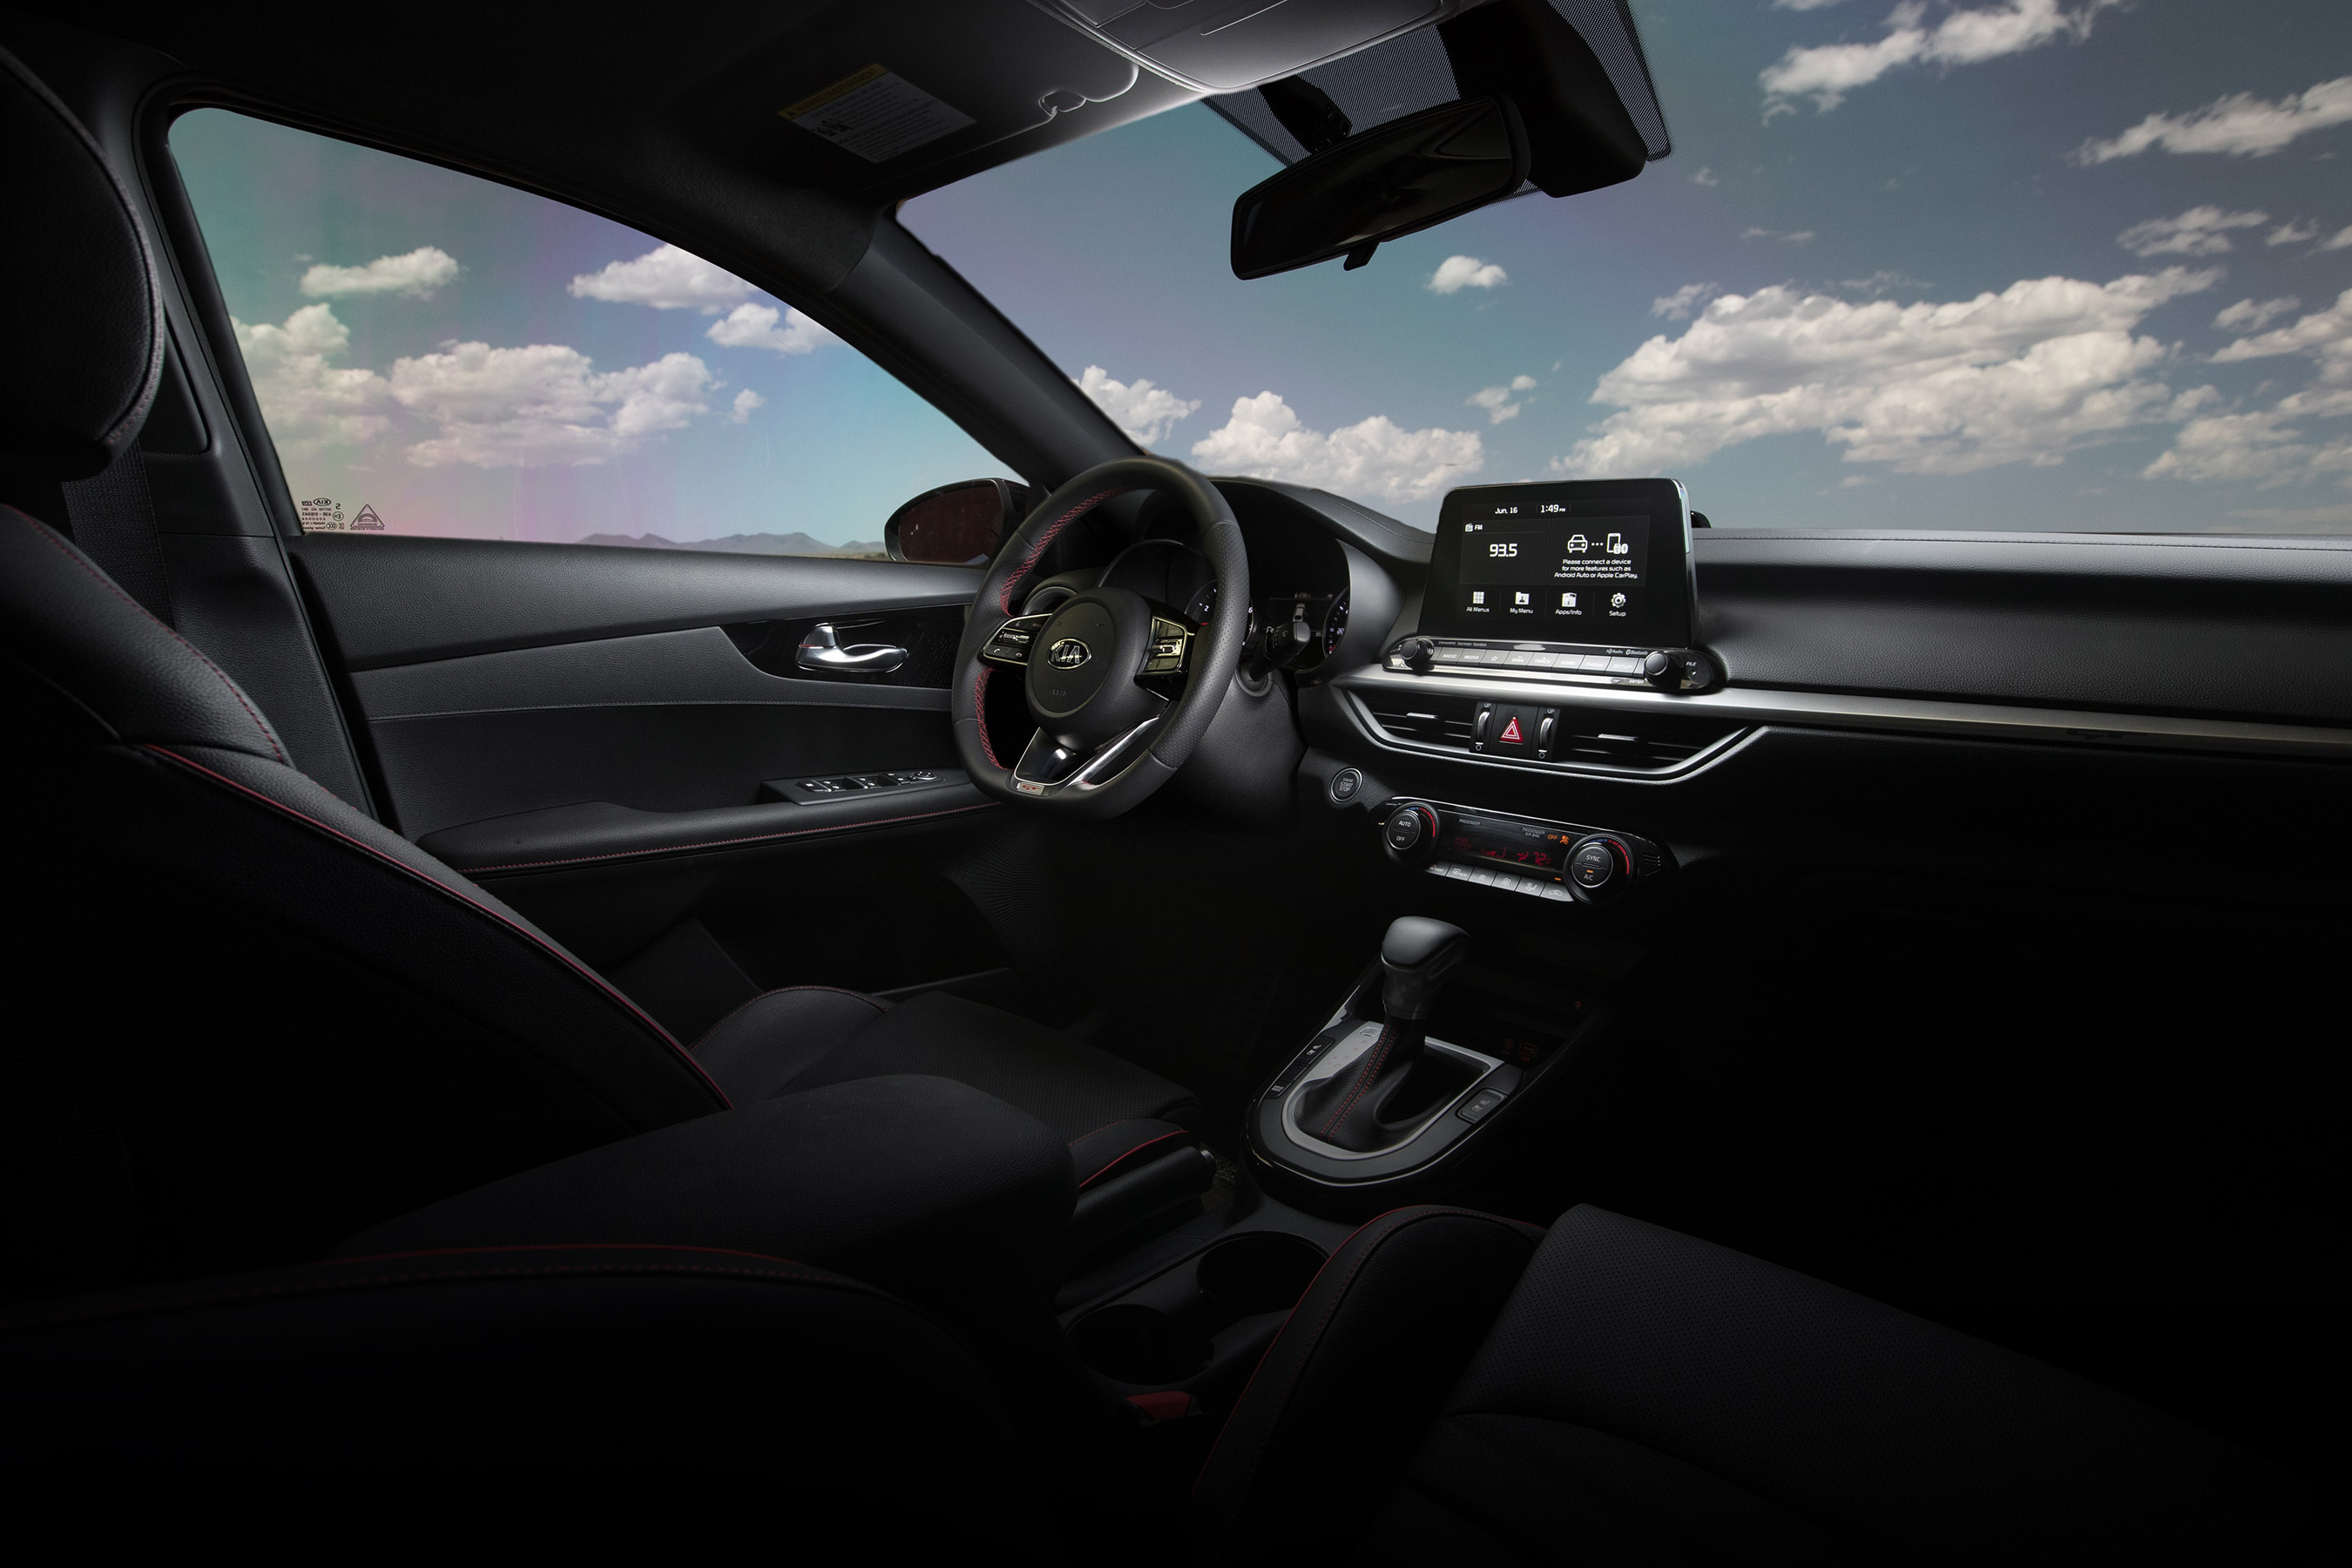 Interior of the 2020 Forte